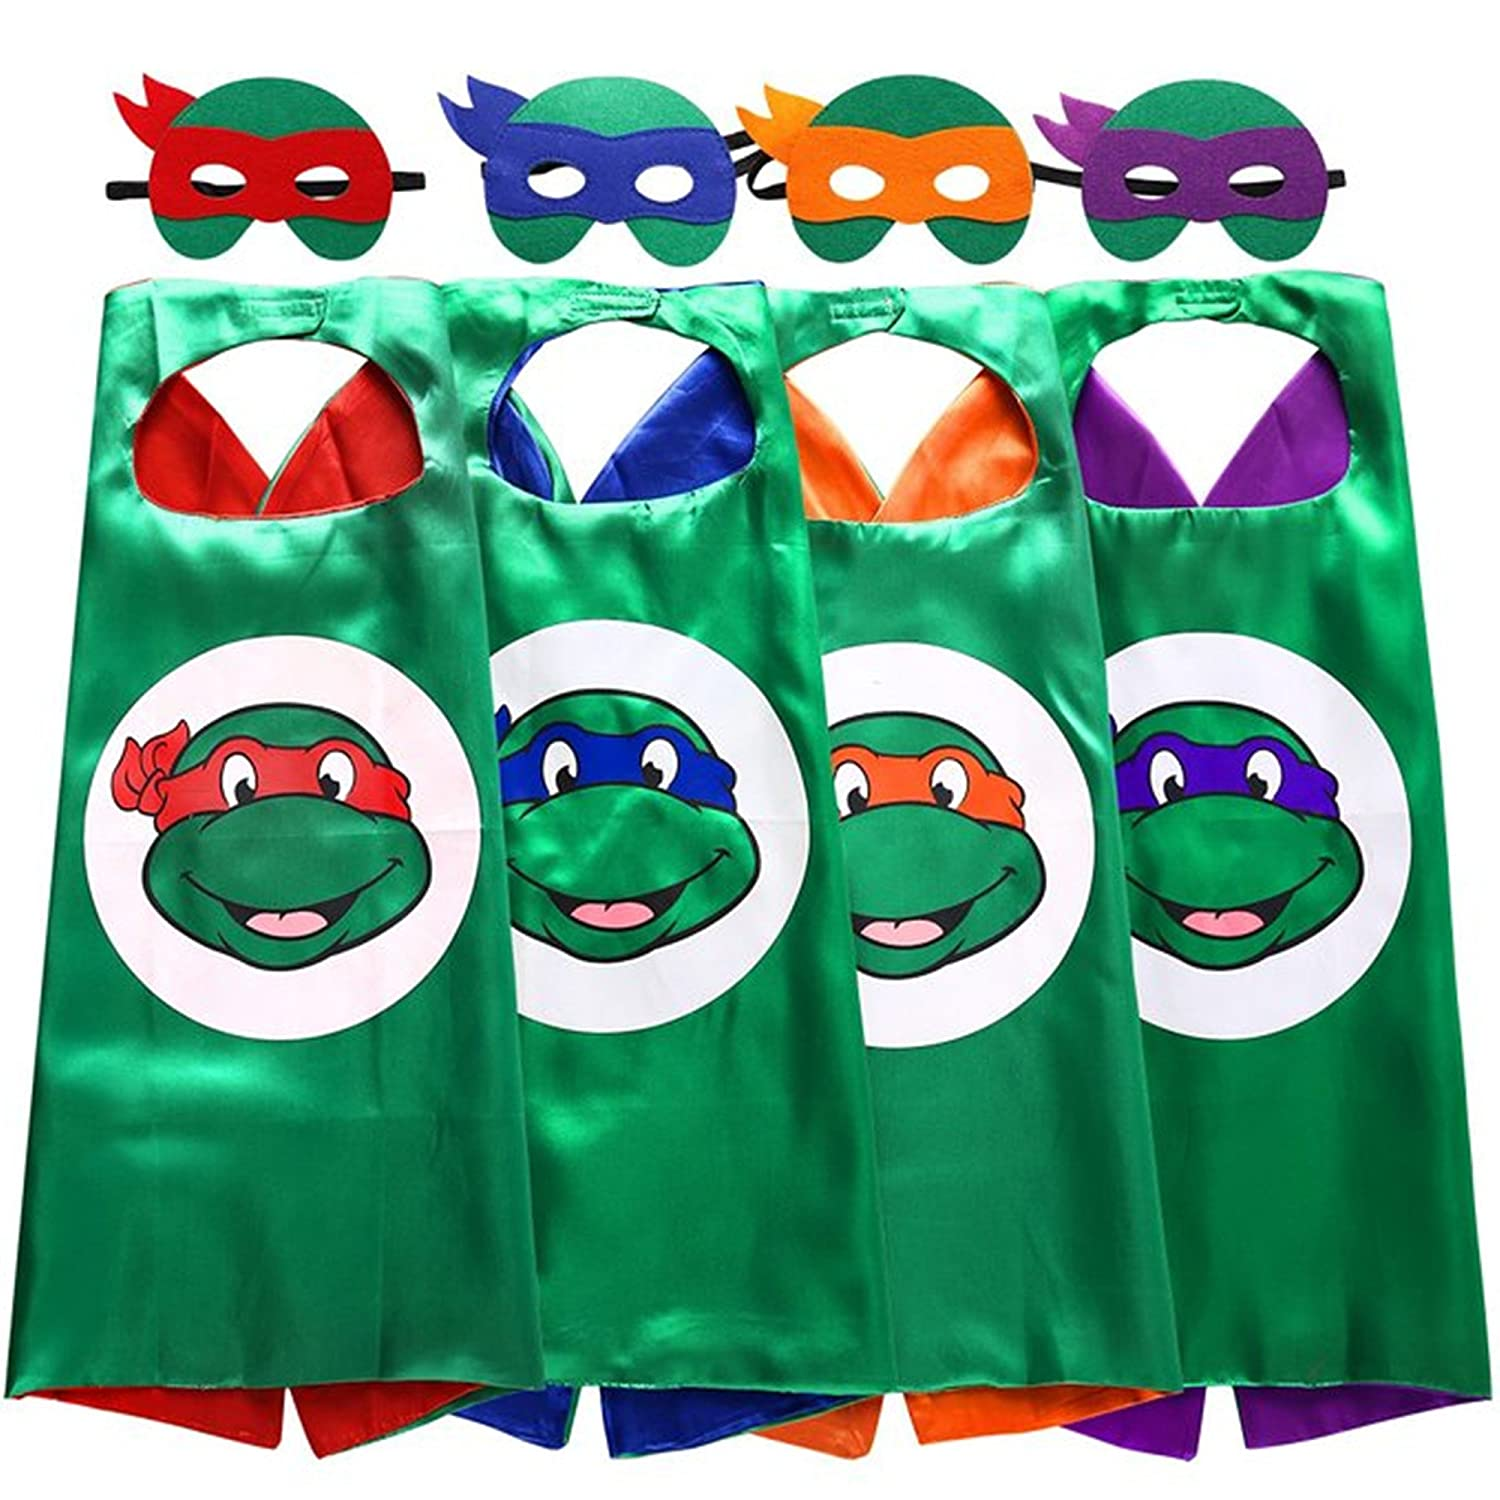 Starkma Superhero Tmnt Cartoon Costume 4 Thermal Pransfer Satin Cape with Felt Mask